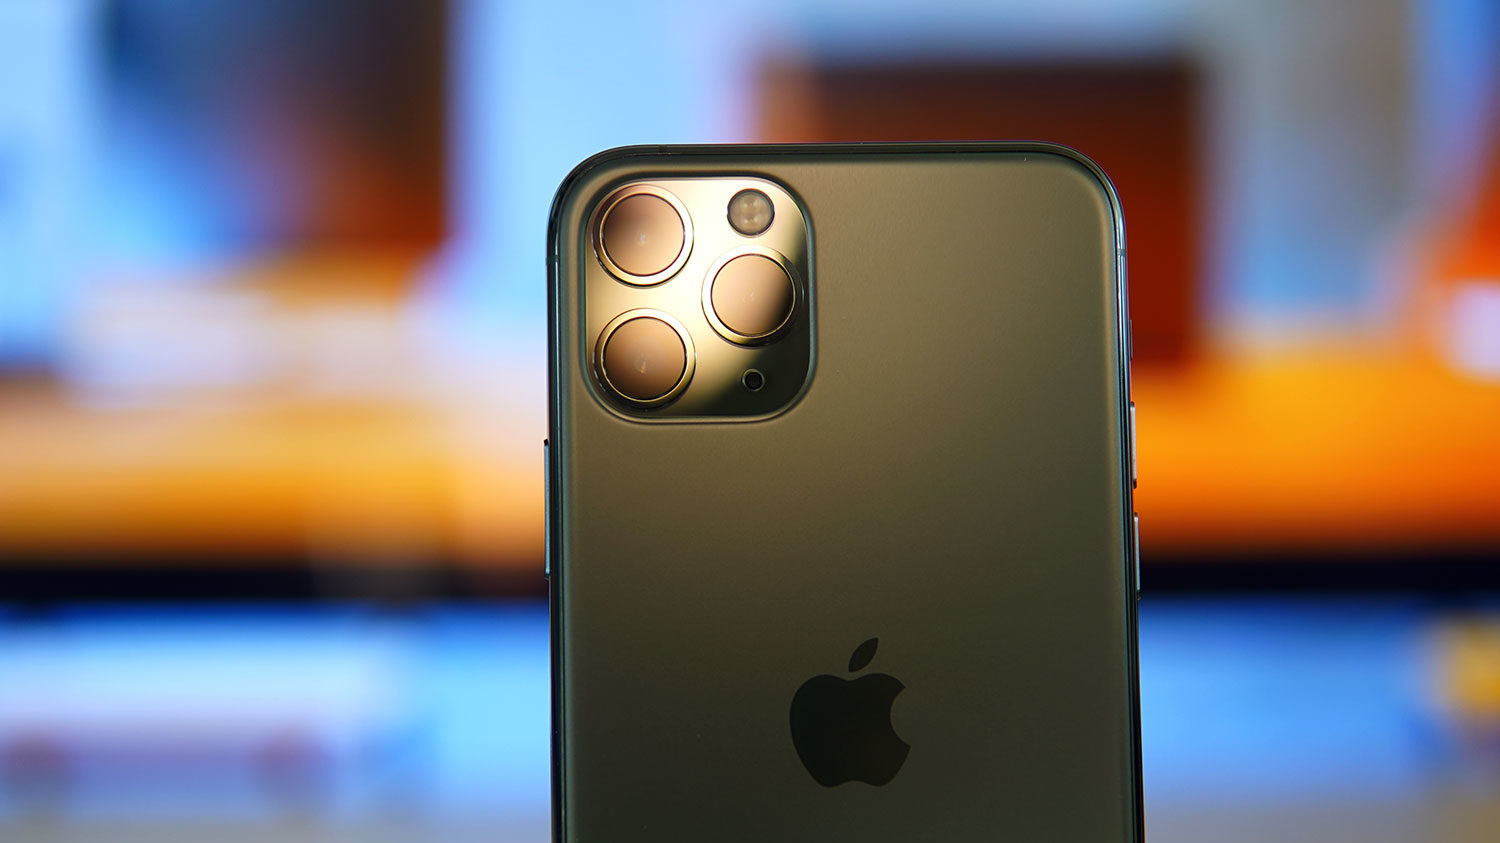 iPhone 12 Pro Camera Specs iOS 14 Leaks shows LiDAR Scanner for Better AR Experience